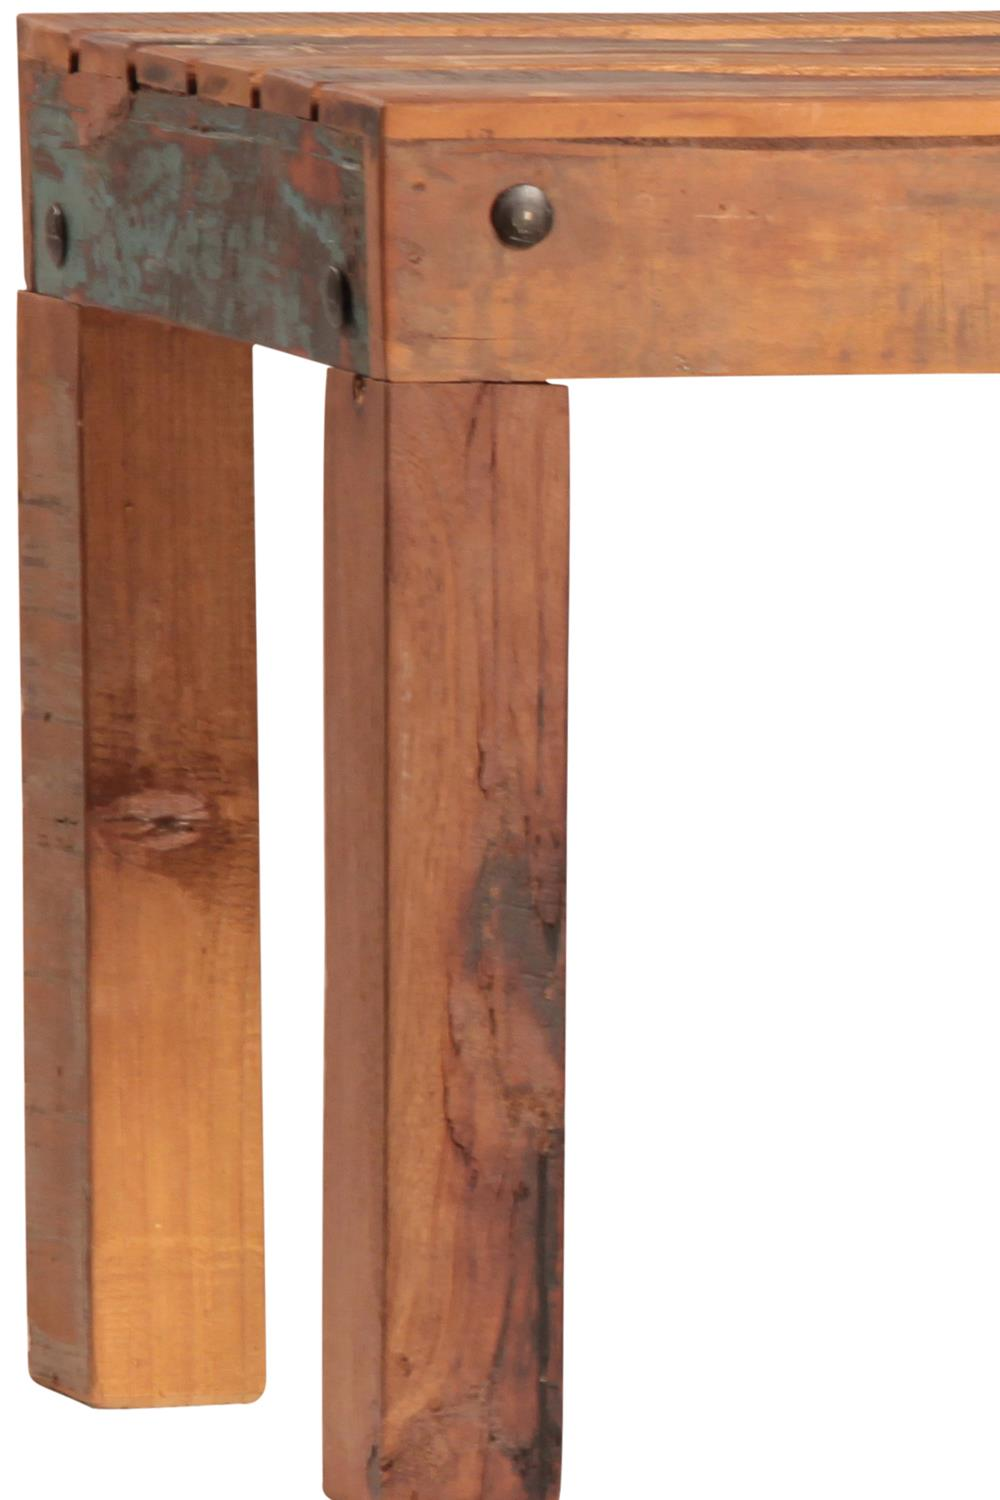 Dovetail Dt By Dovetail Furniture Williams Kay Dovetail